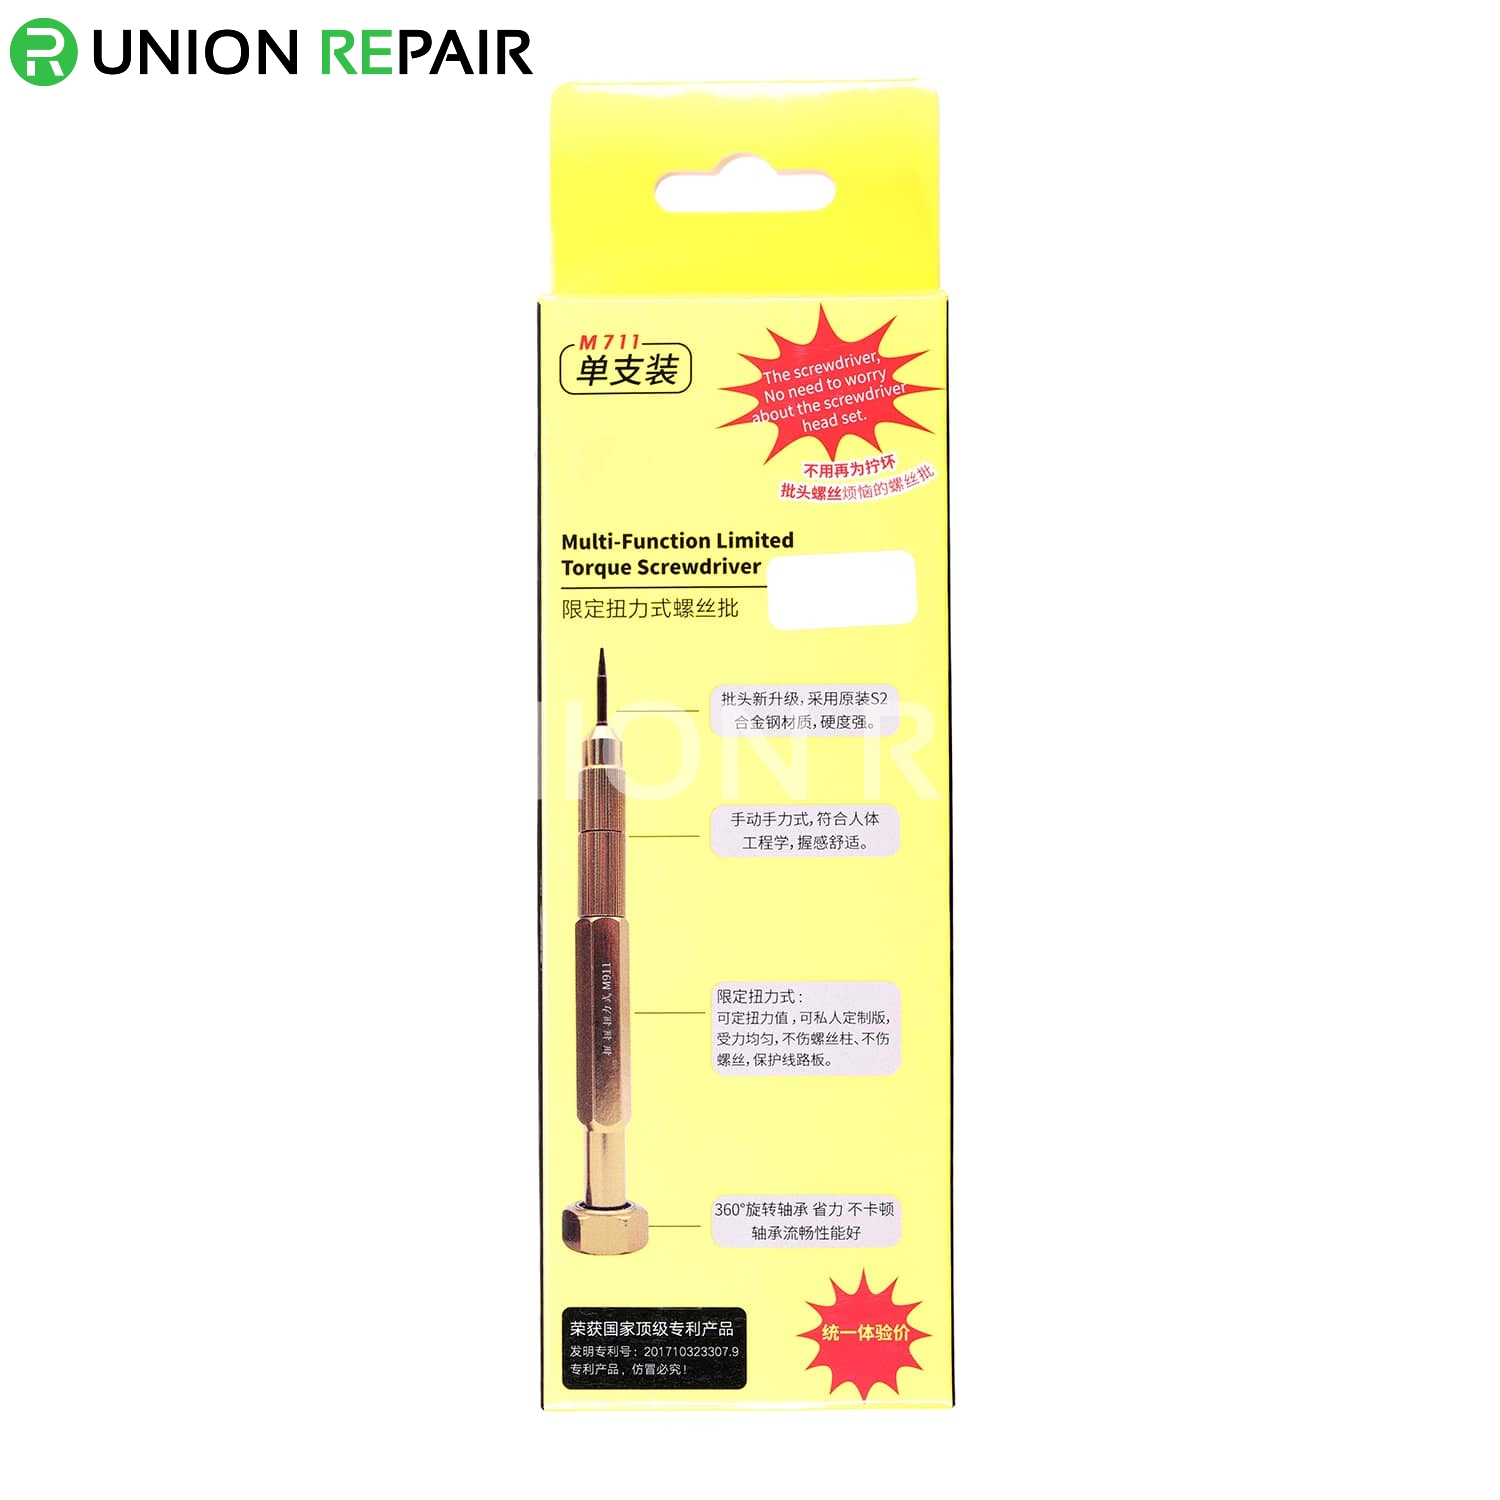 B&R M711 Multifunctional Limited Torque Screwdriver